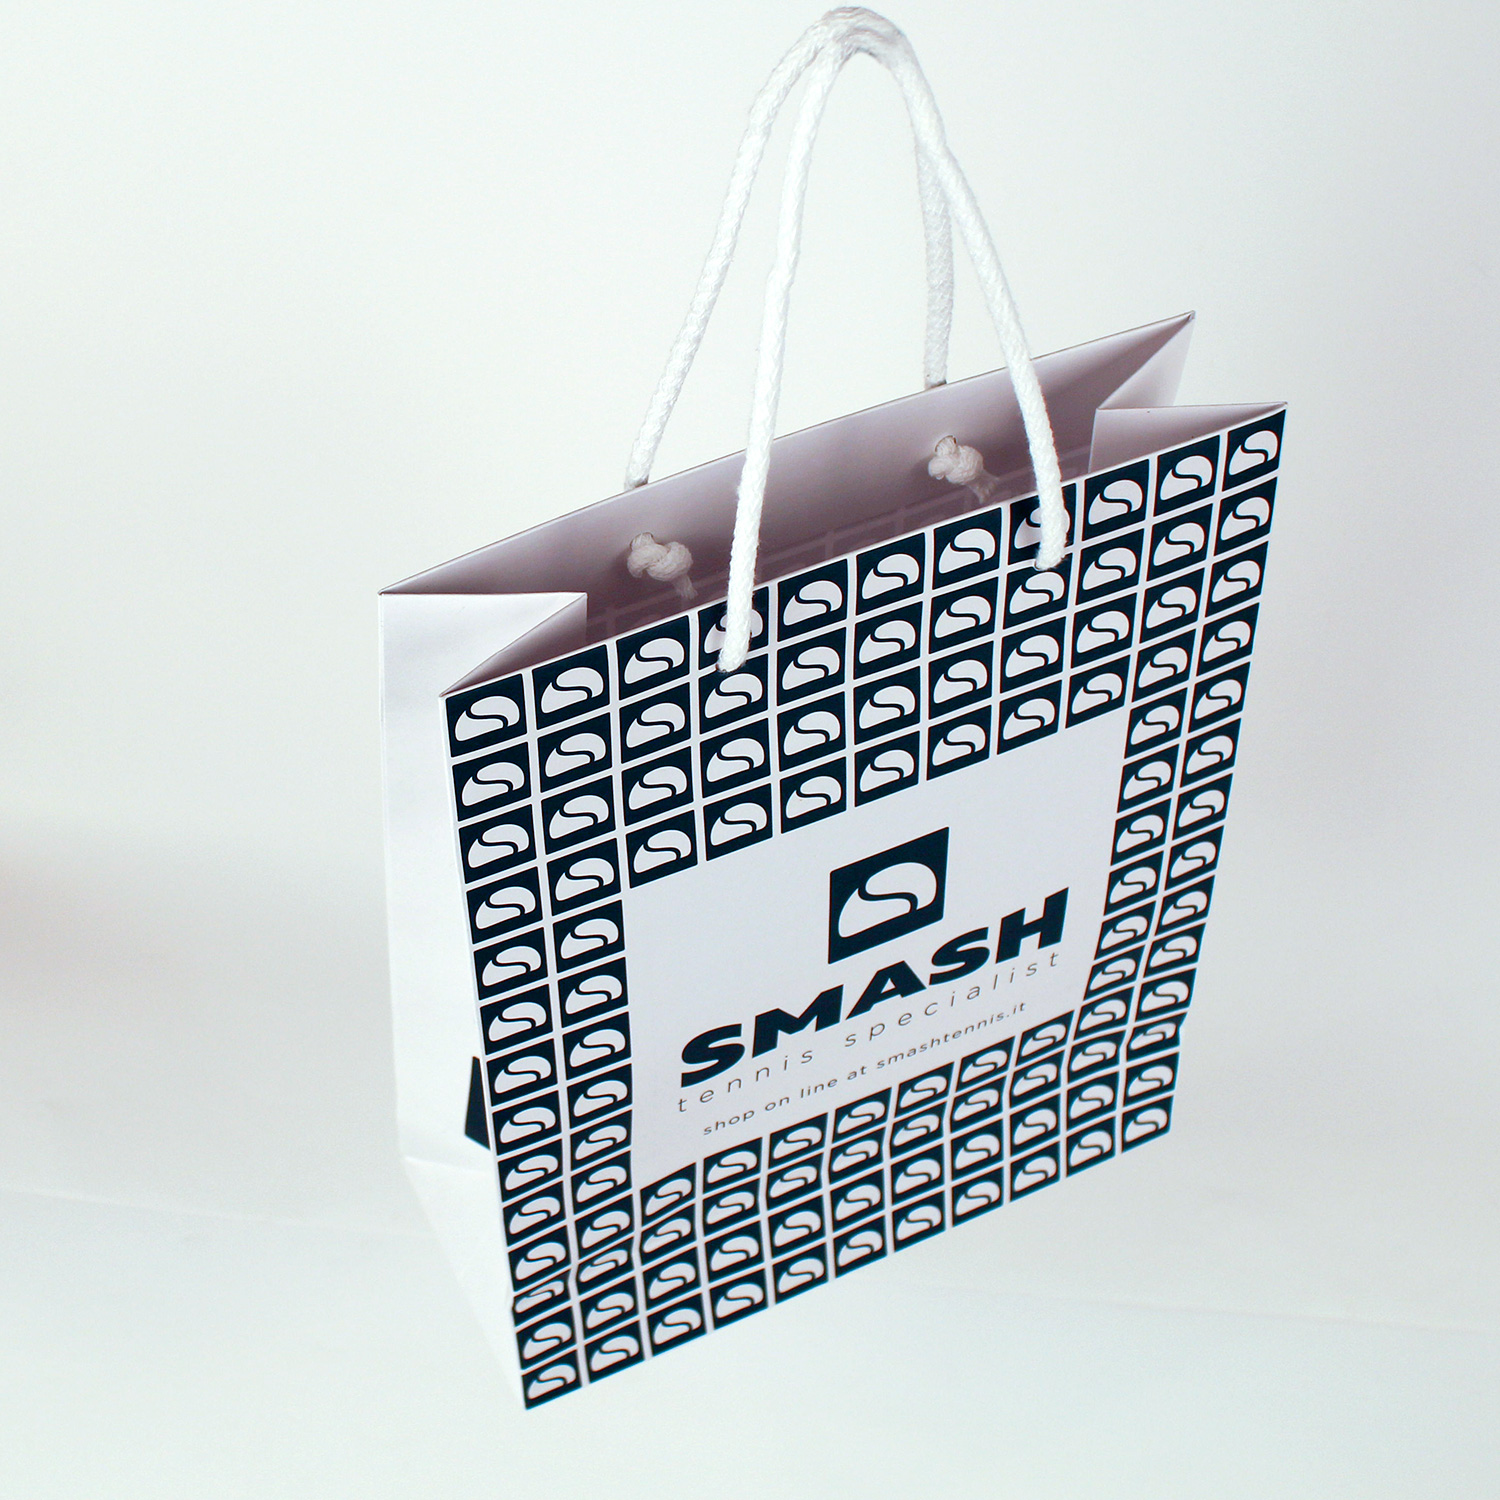 1 | Smash | Shopping bag